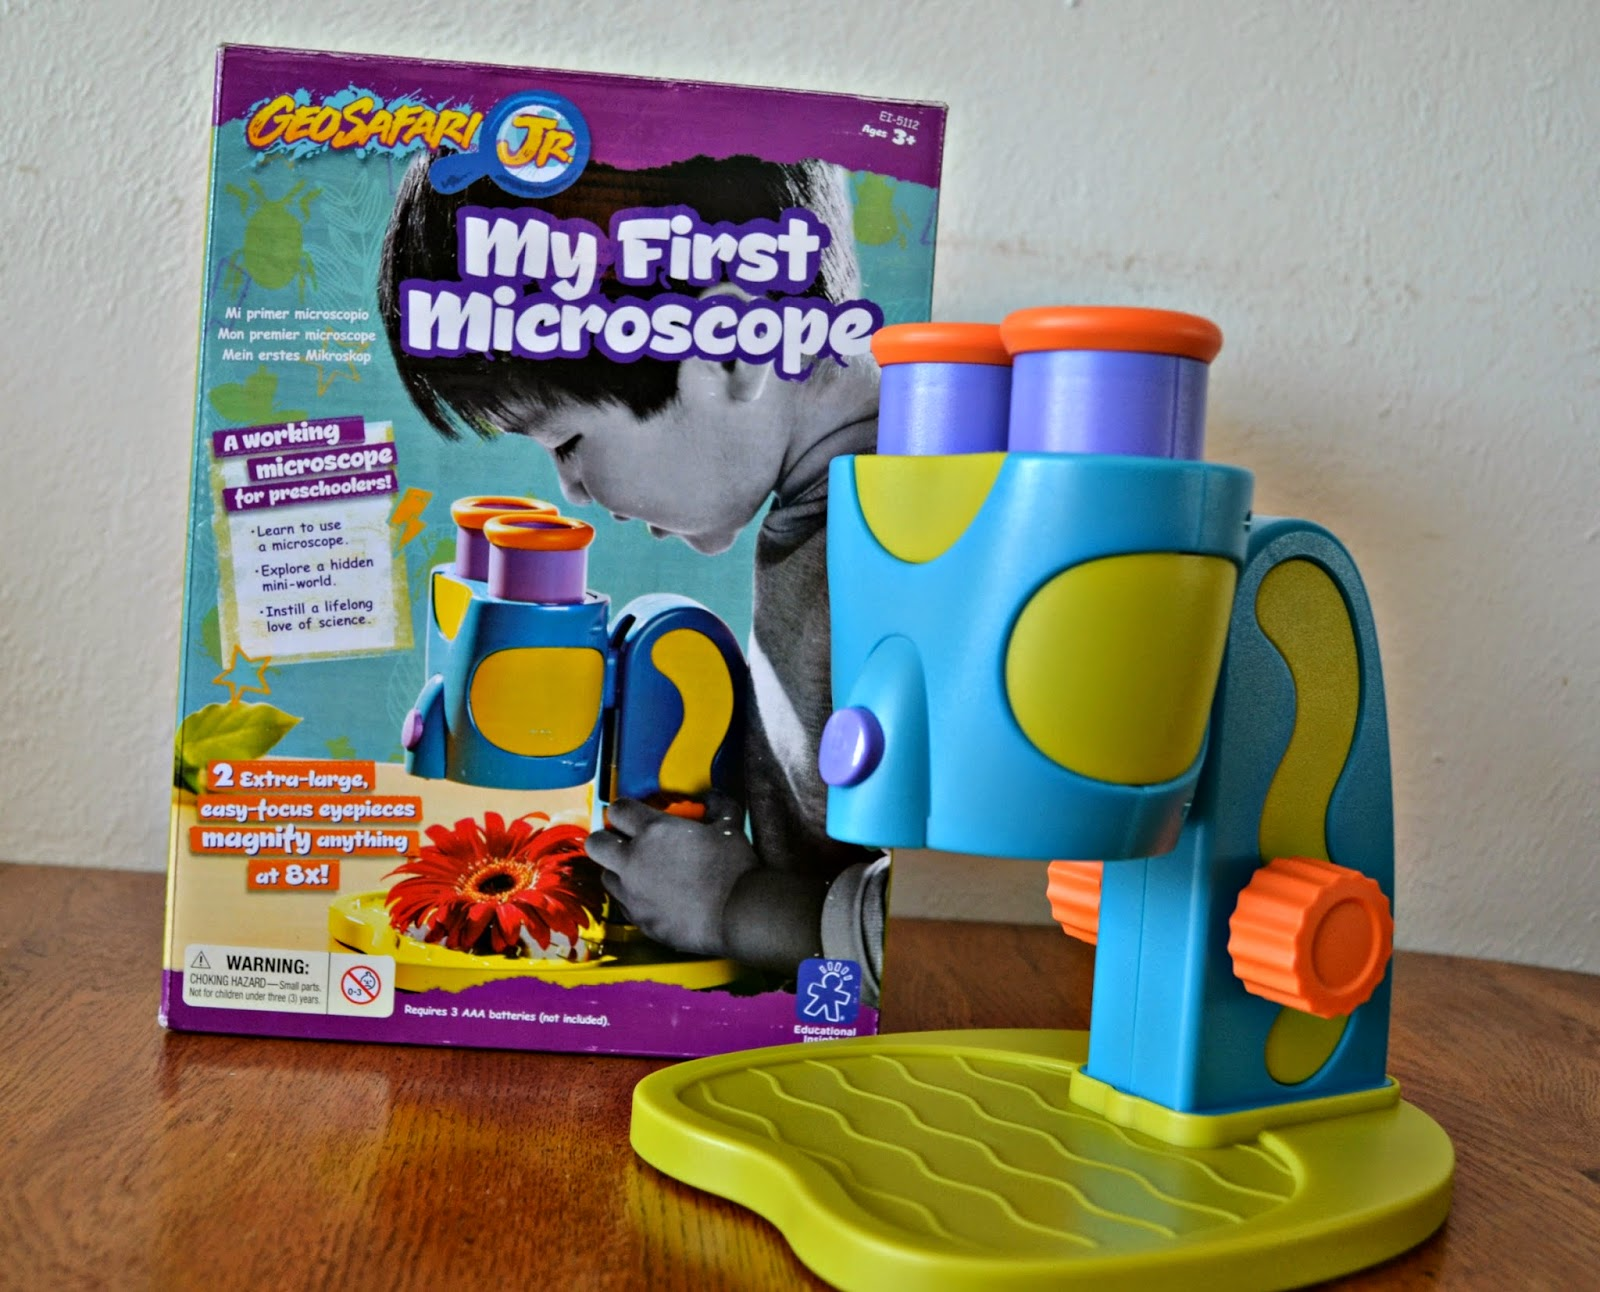 GeoSafari® Jr. My First Microscope.  Microscope for Preschoolers.  Microscope for toddlers.  Toddler gear review.  Educational Insights Microscope